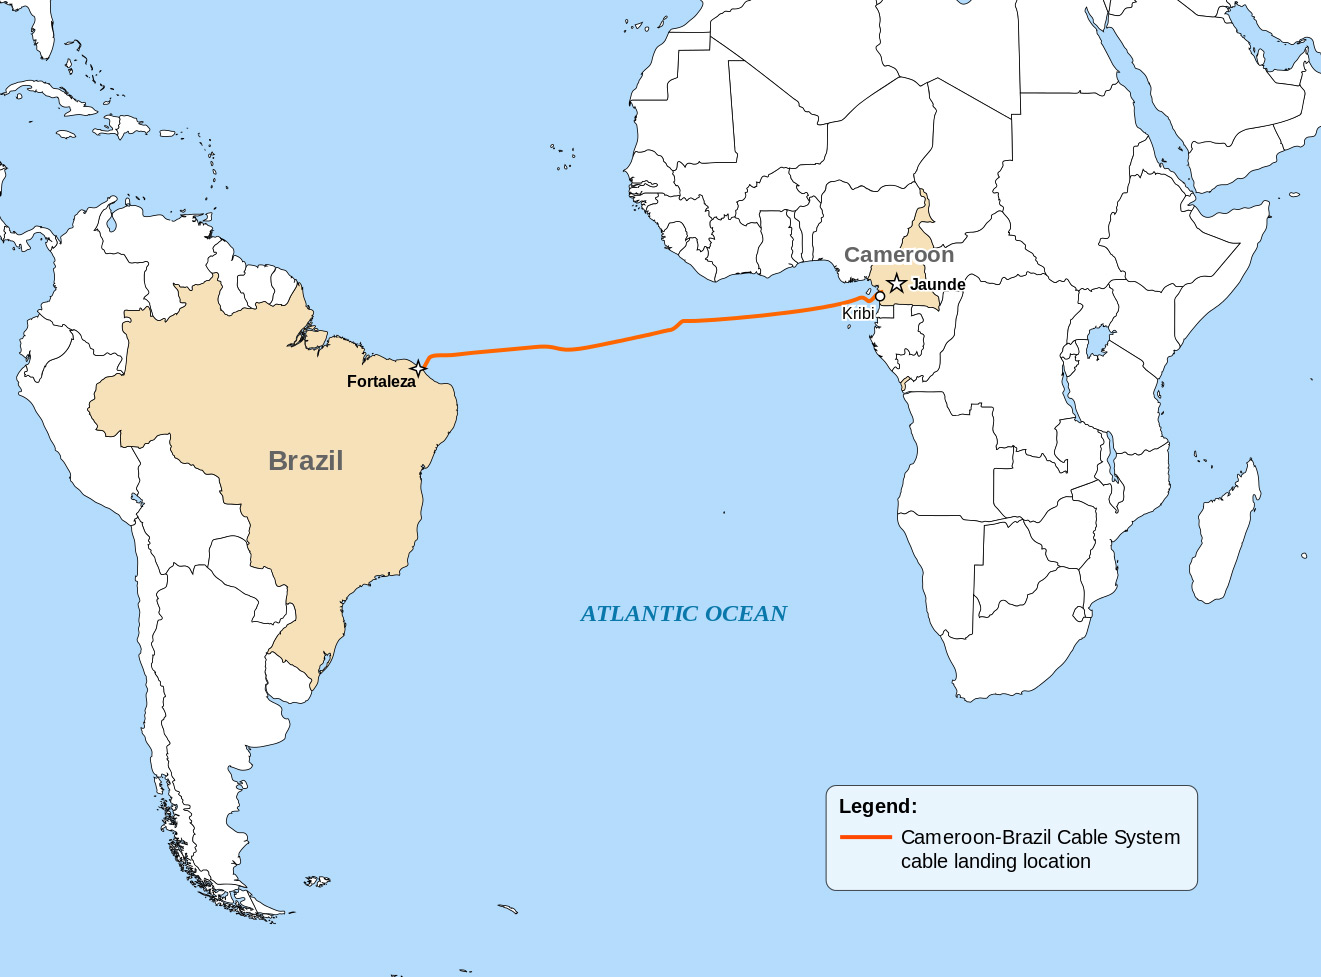 Installation of Cameroon-Brazil Cable System Begins | Fiber Optic ...